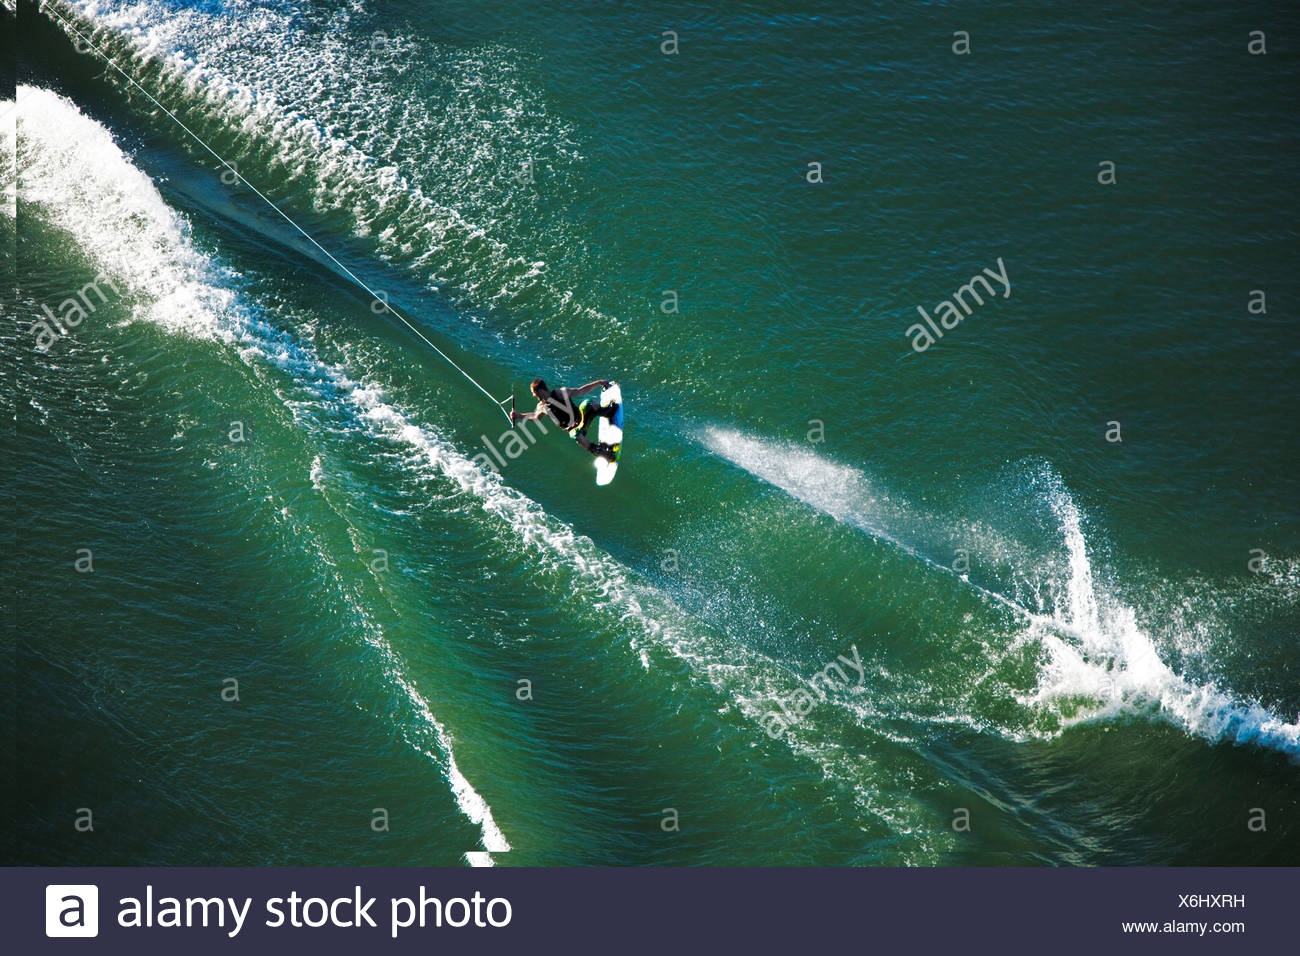 A athletic wakeboarder jumps the wake going huge on a calm day in Idaho. - Stock Image